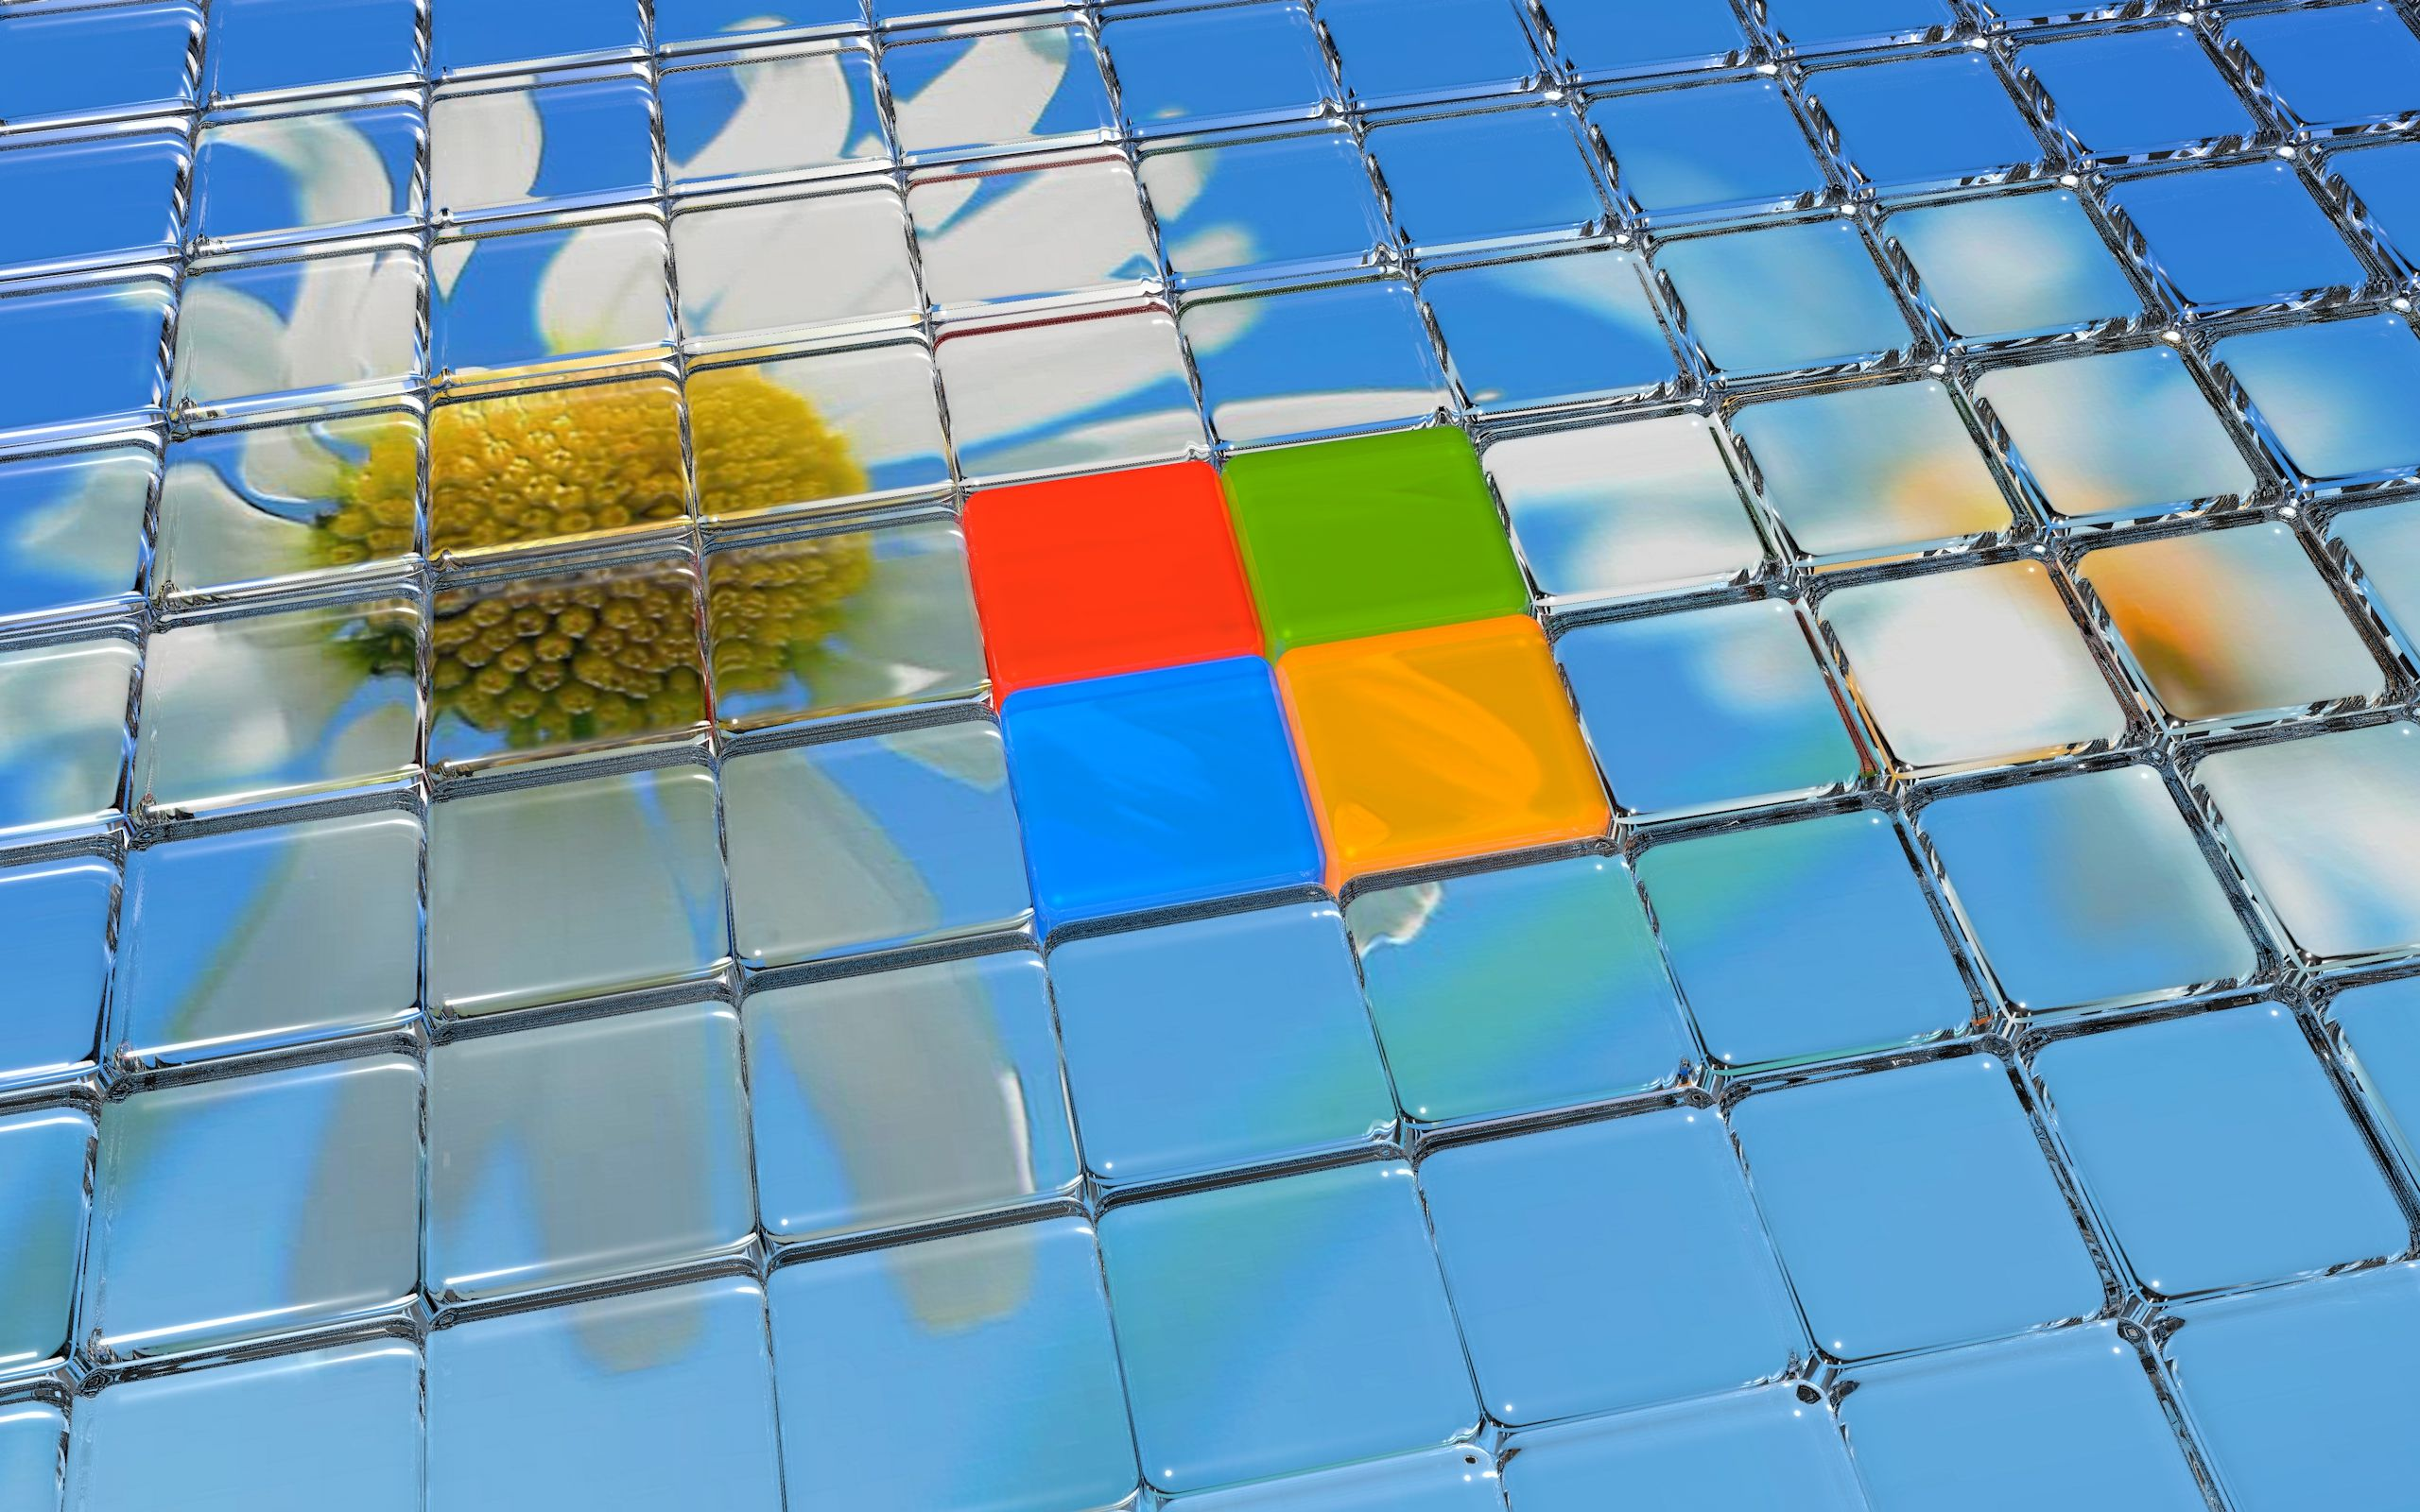 flower and windows 8 logo in glass 3d wallpaper free | places to